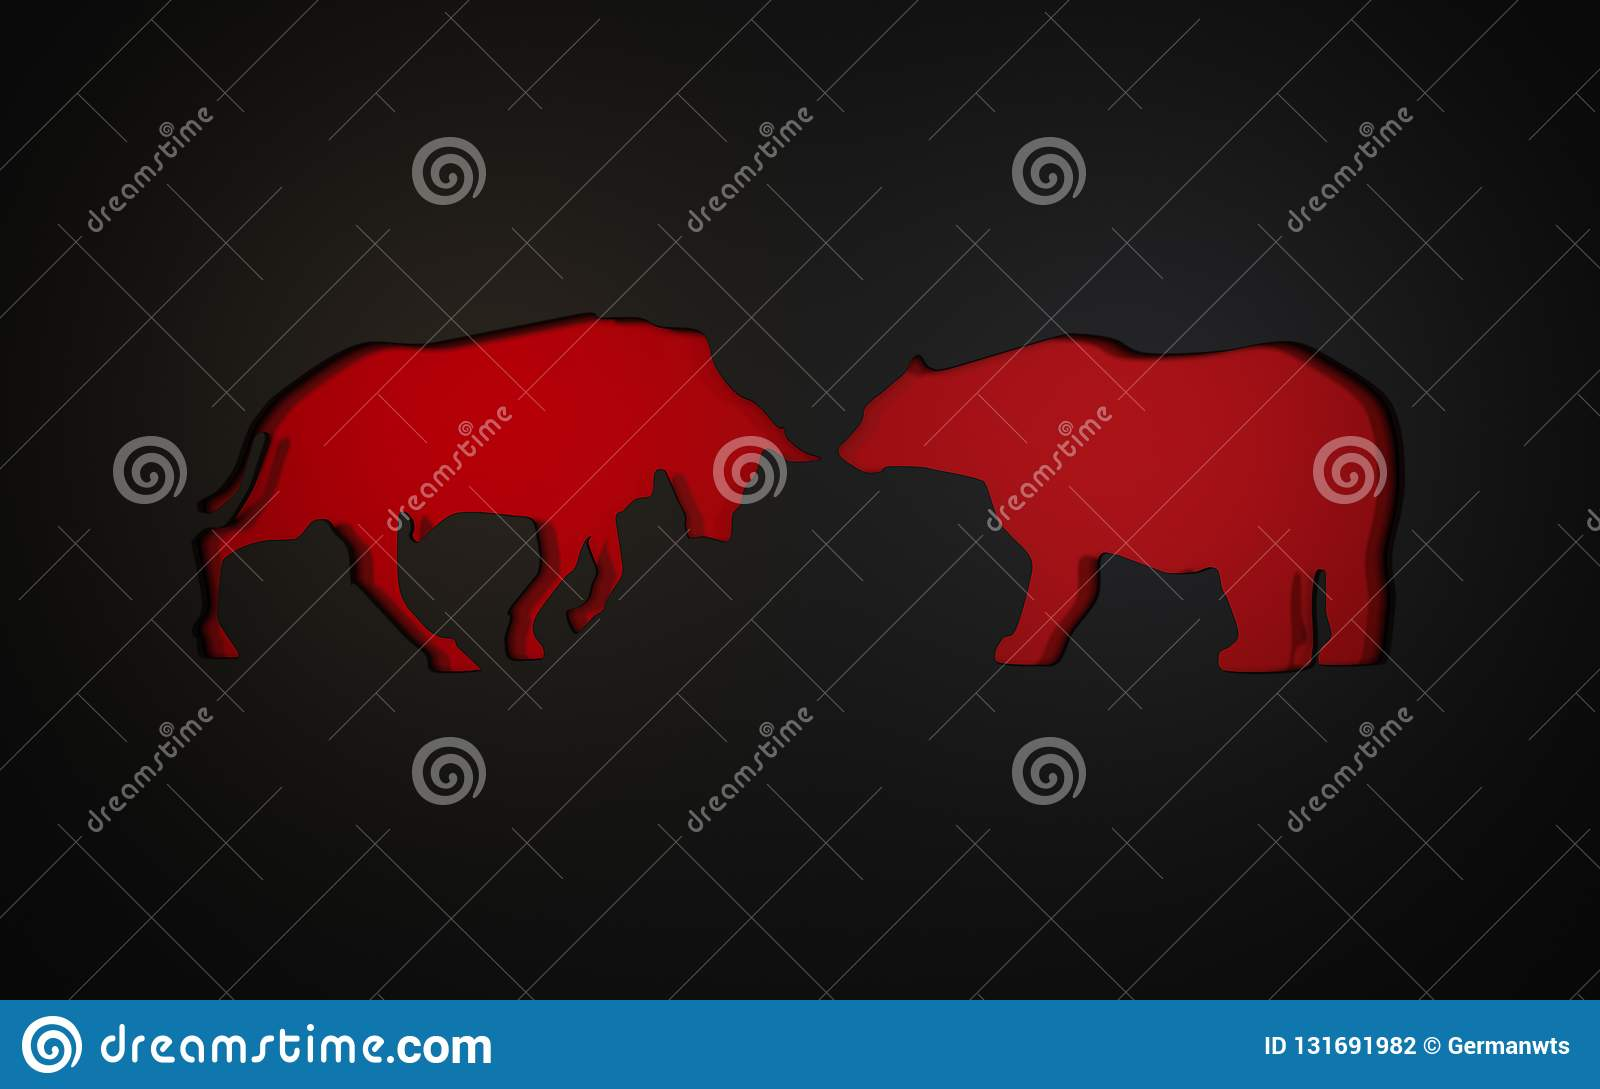 Applique of the symbols of a bull and bear used in the stock market. 3D rendering